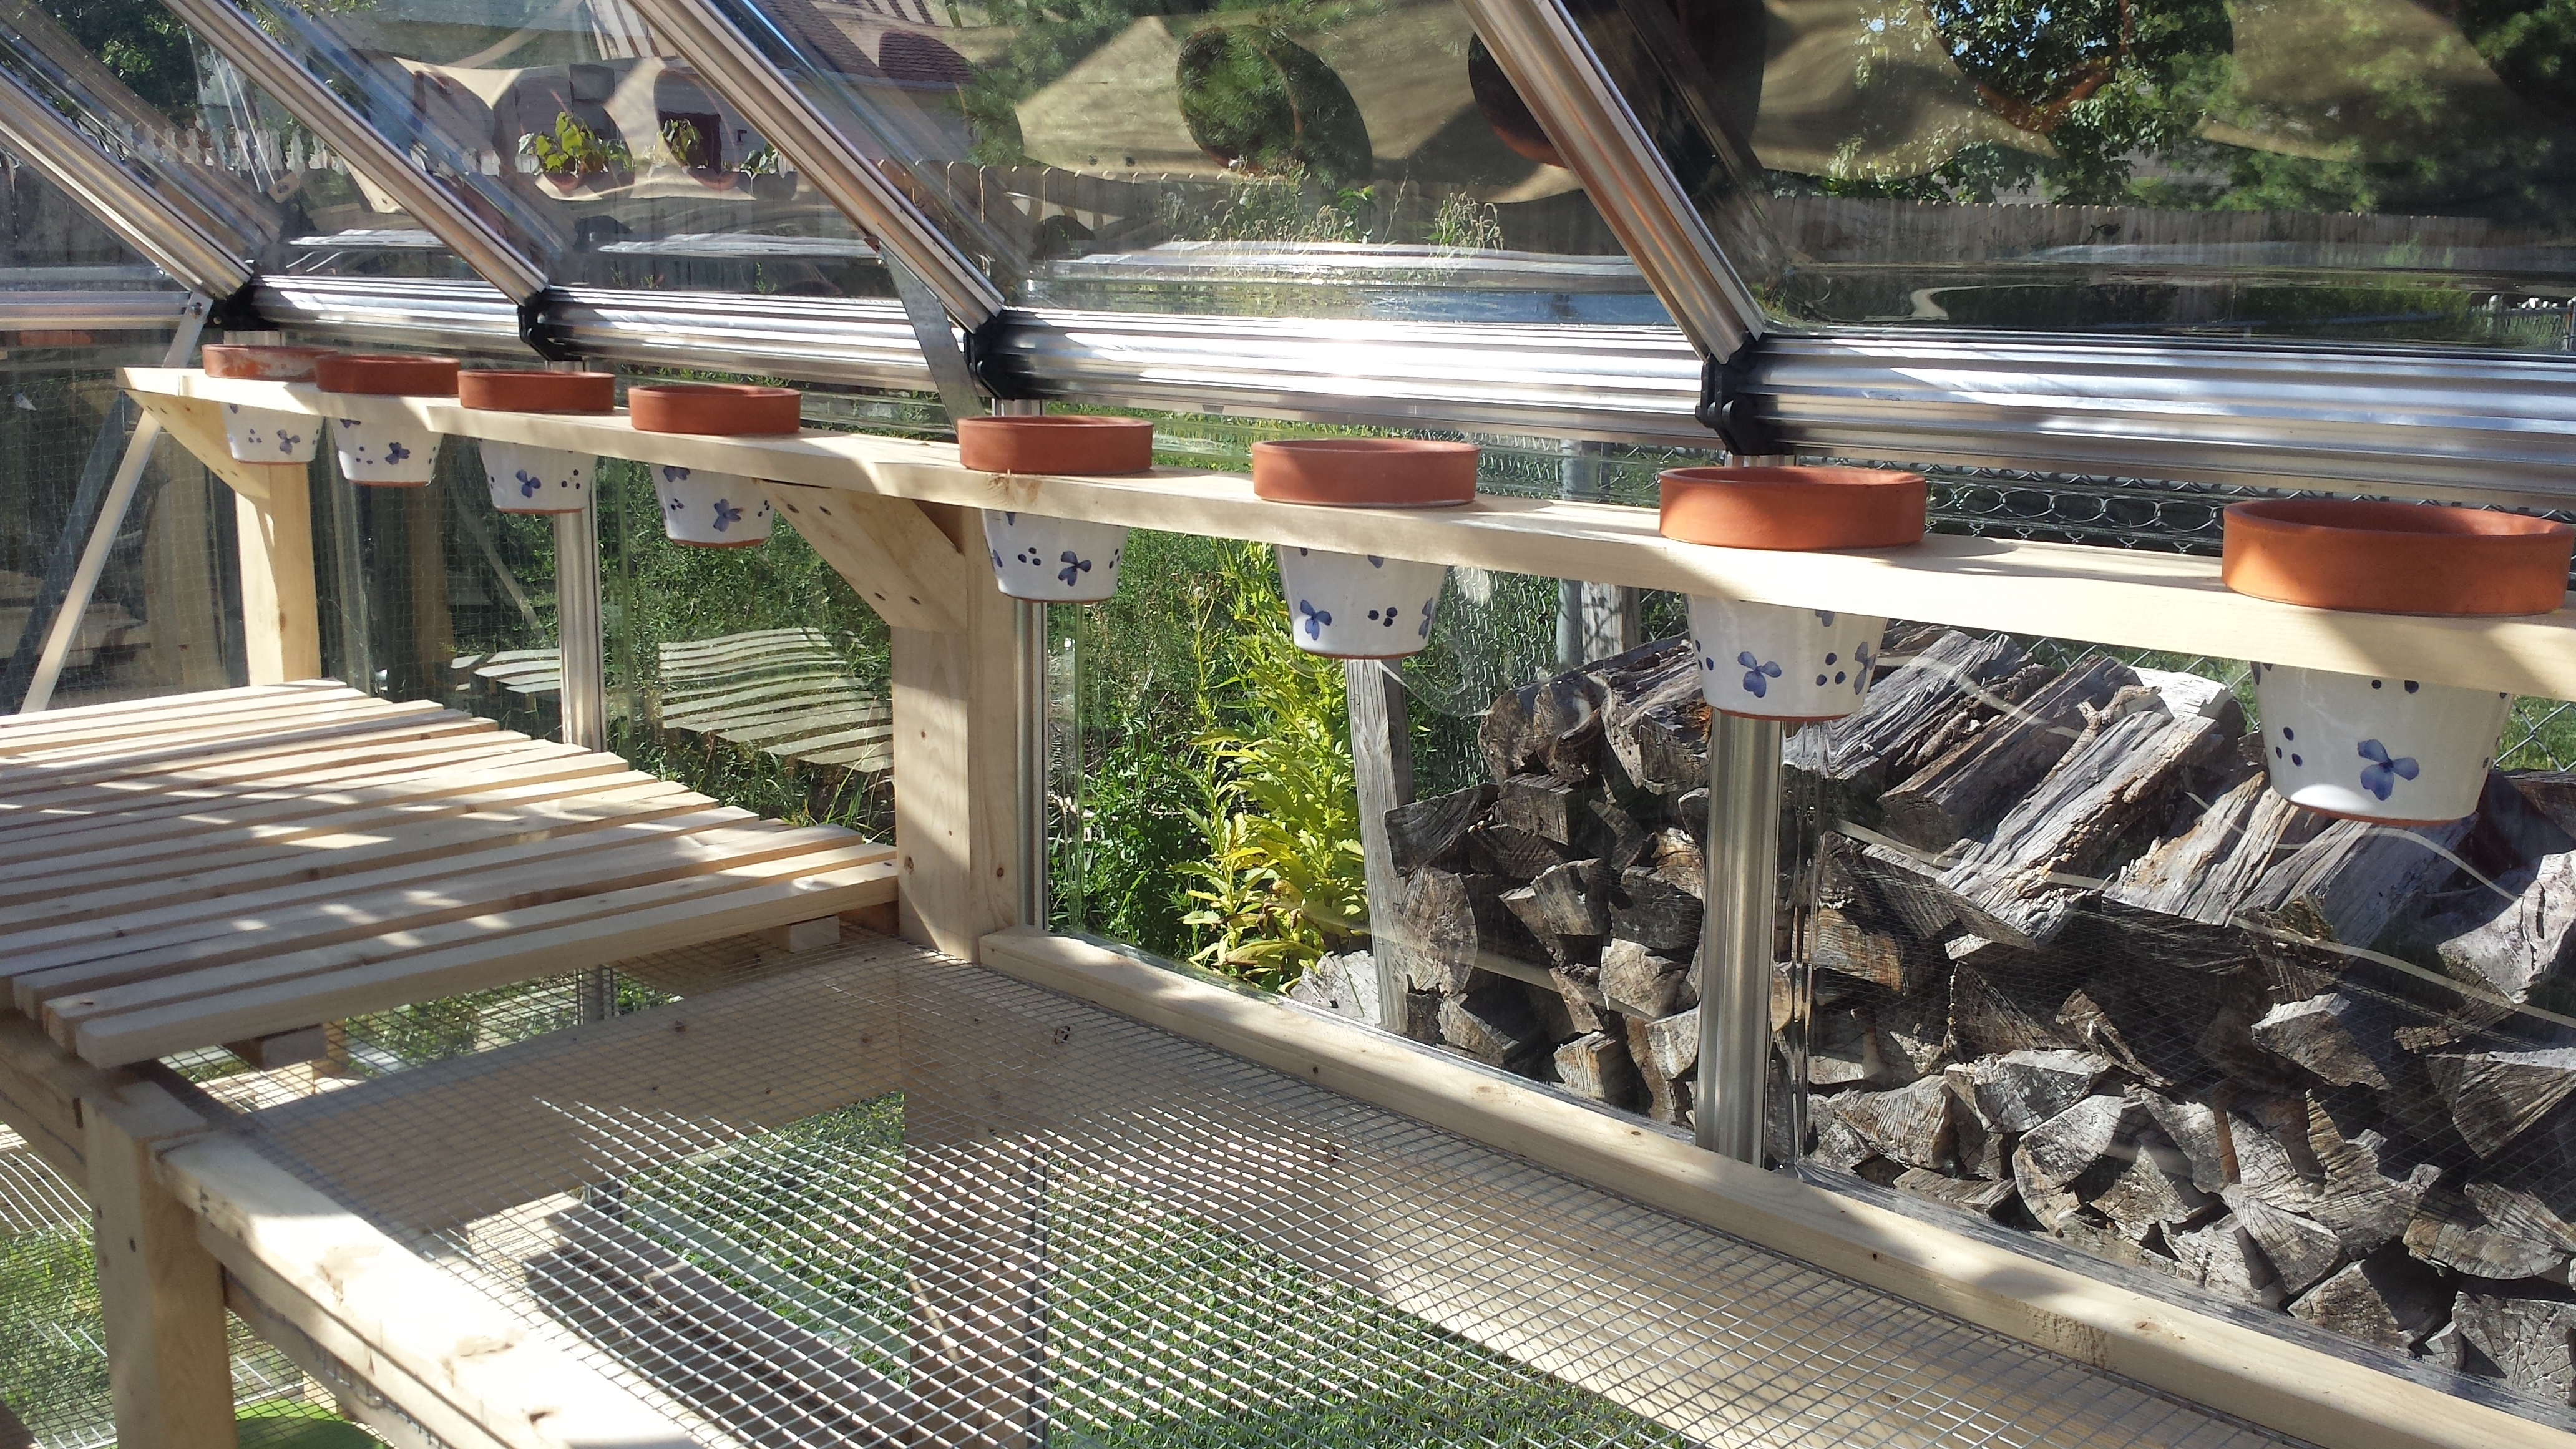 Picture of Greenhouse Growing Bench